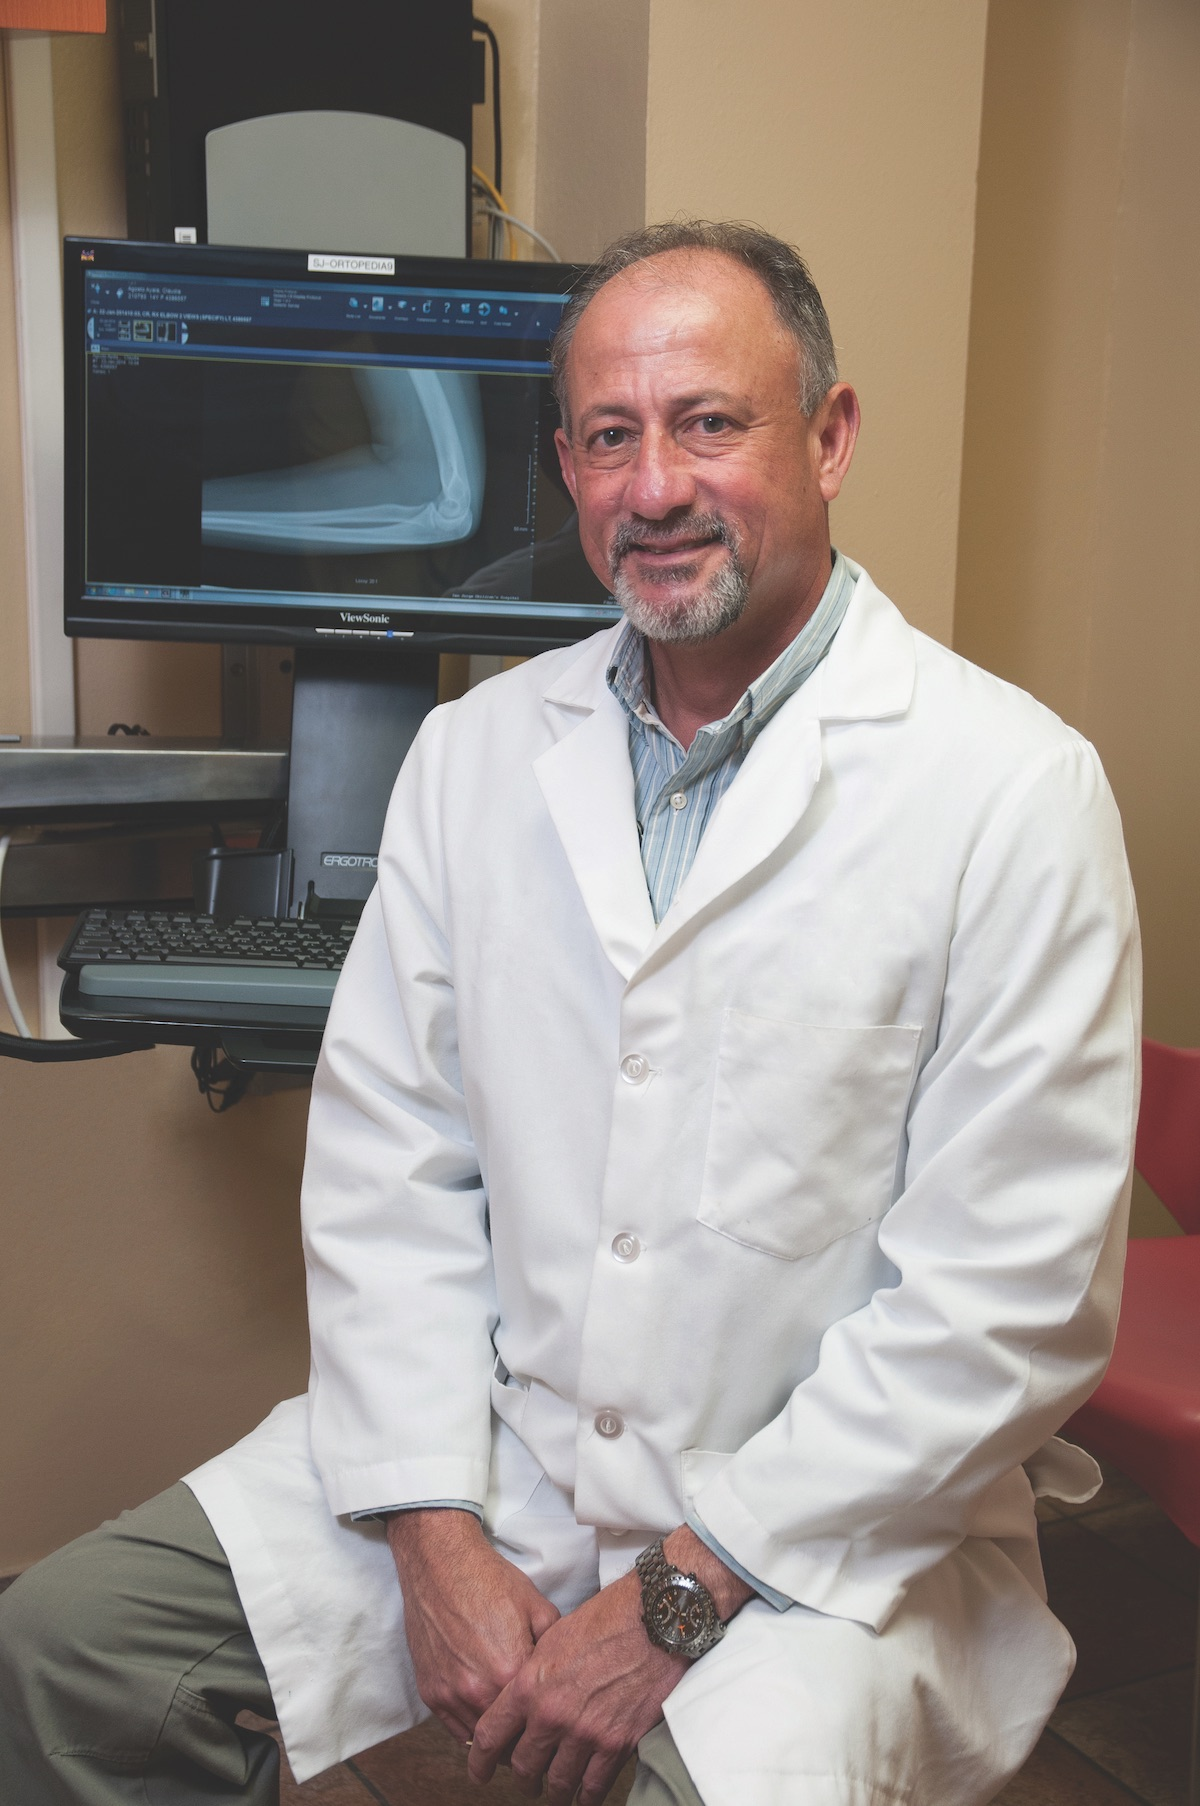 Dr. Jose A. Collazo, specialist in pediatric orthopedics with practice at San Jorge Children's Hospital and the Mennonite Health System.